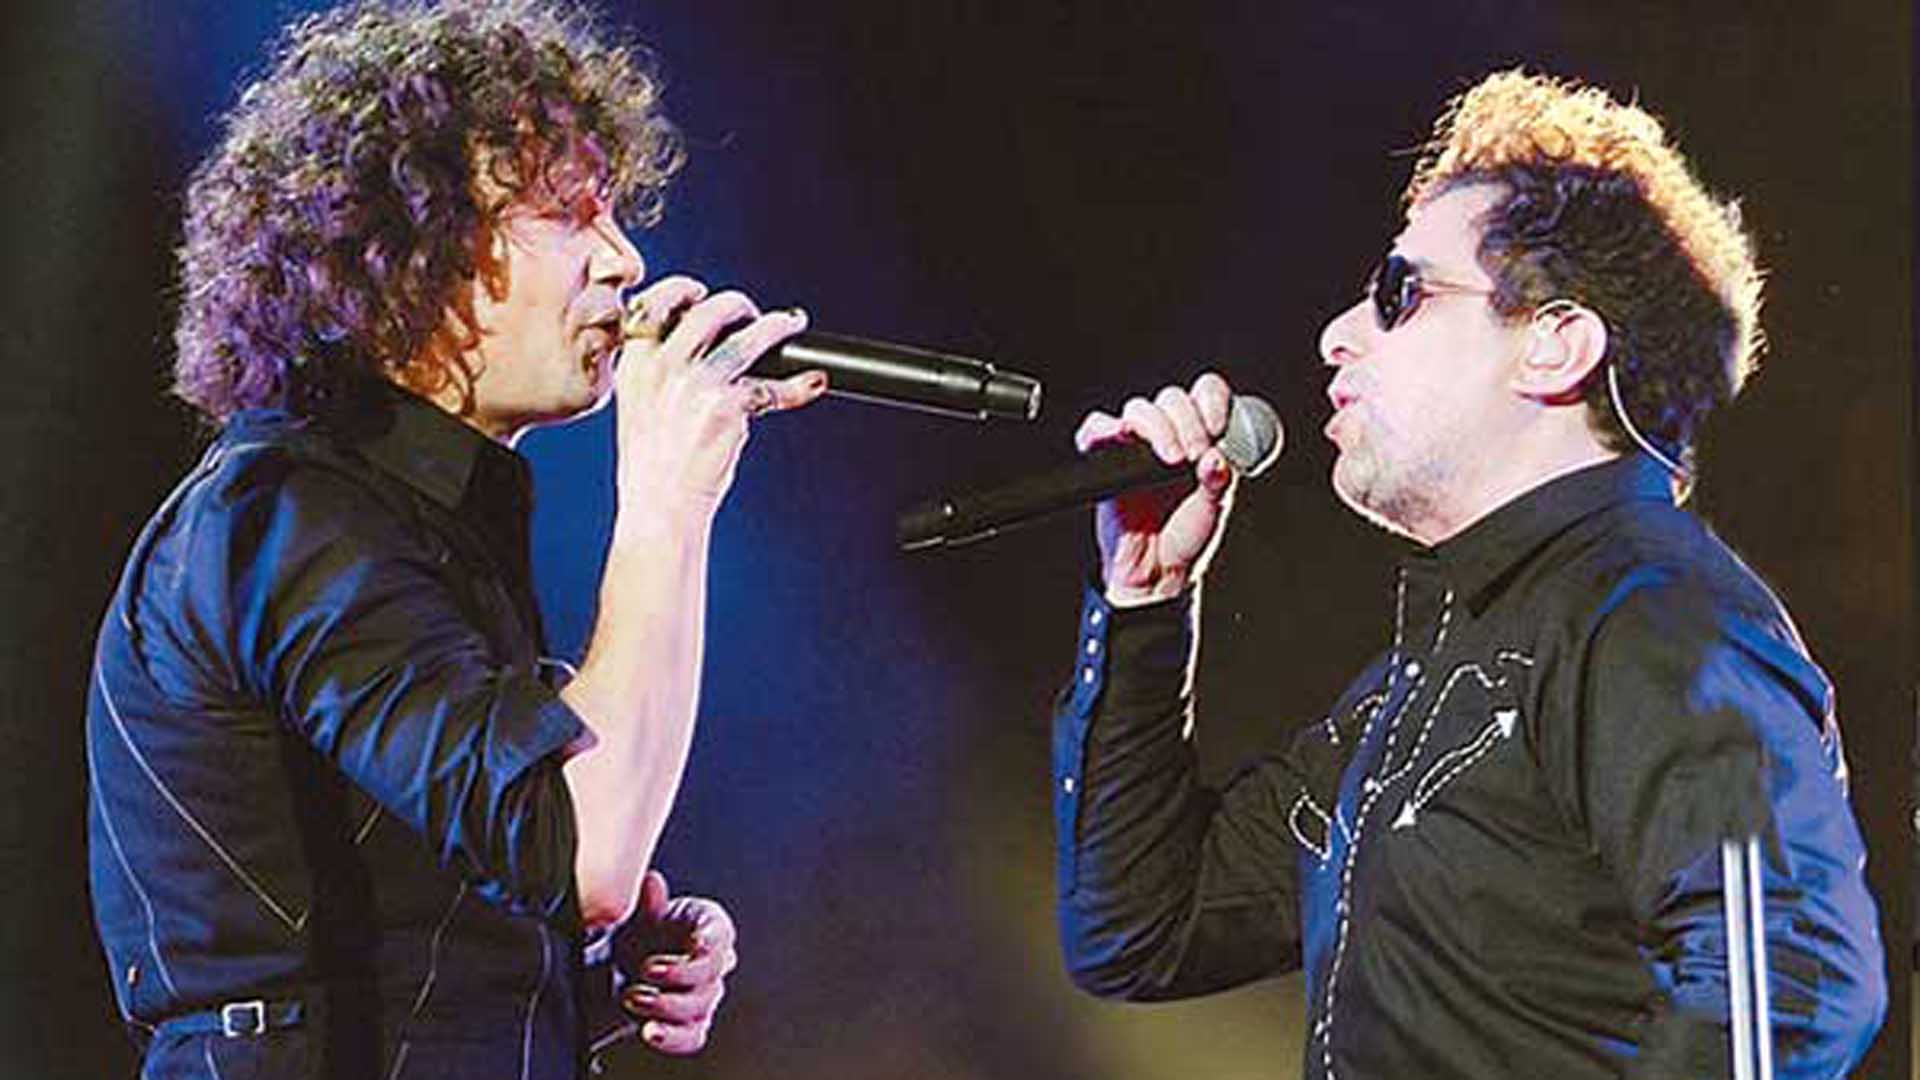 calamaro_-_copia